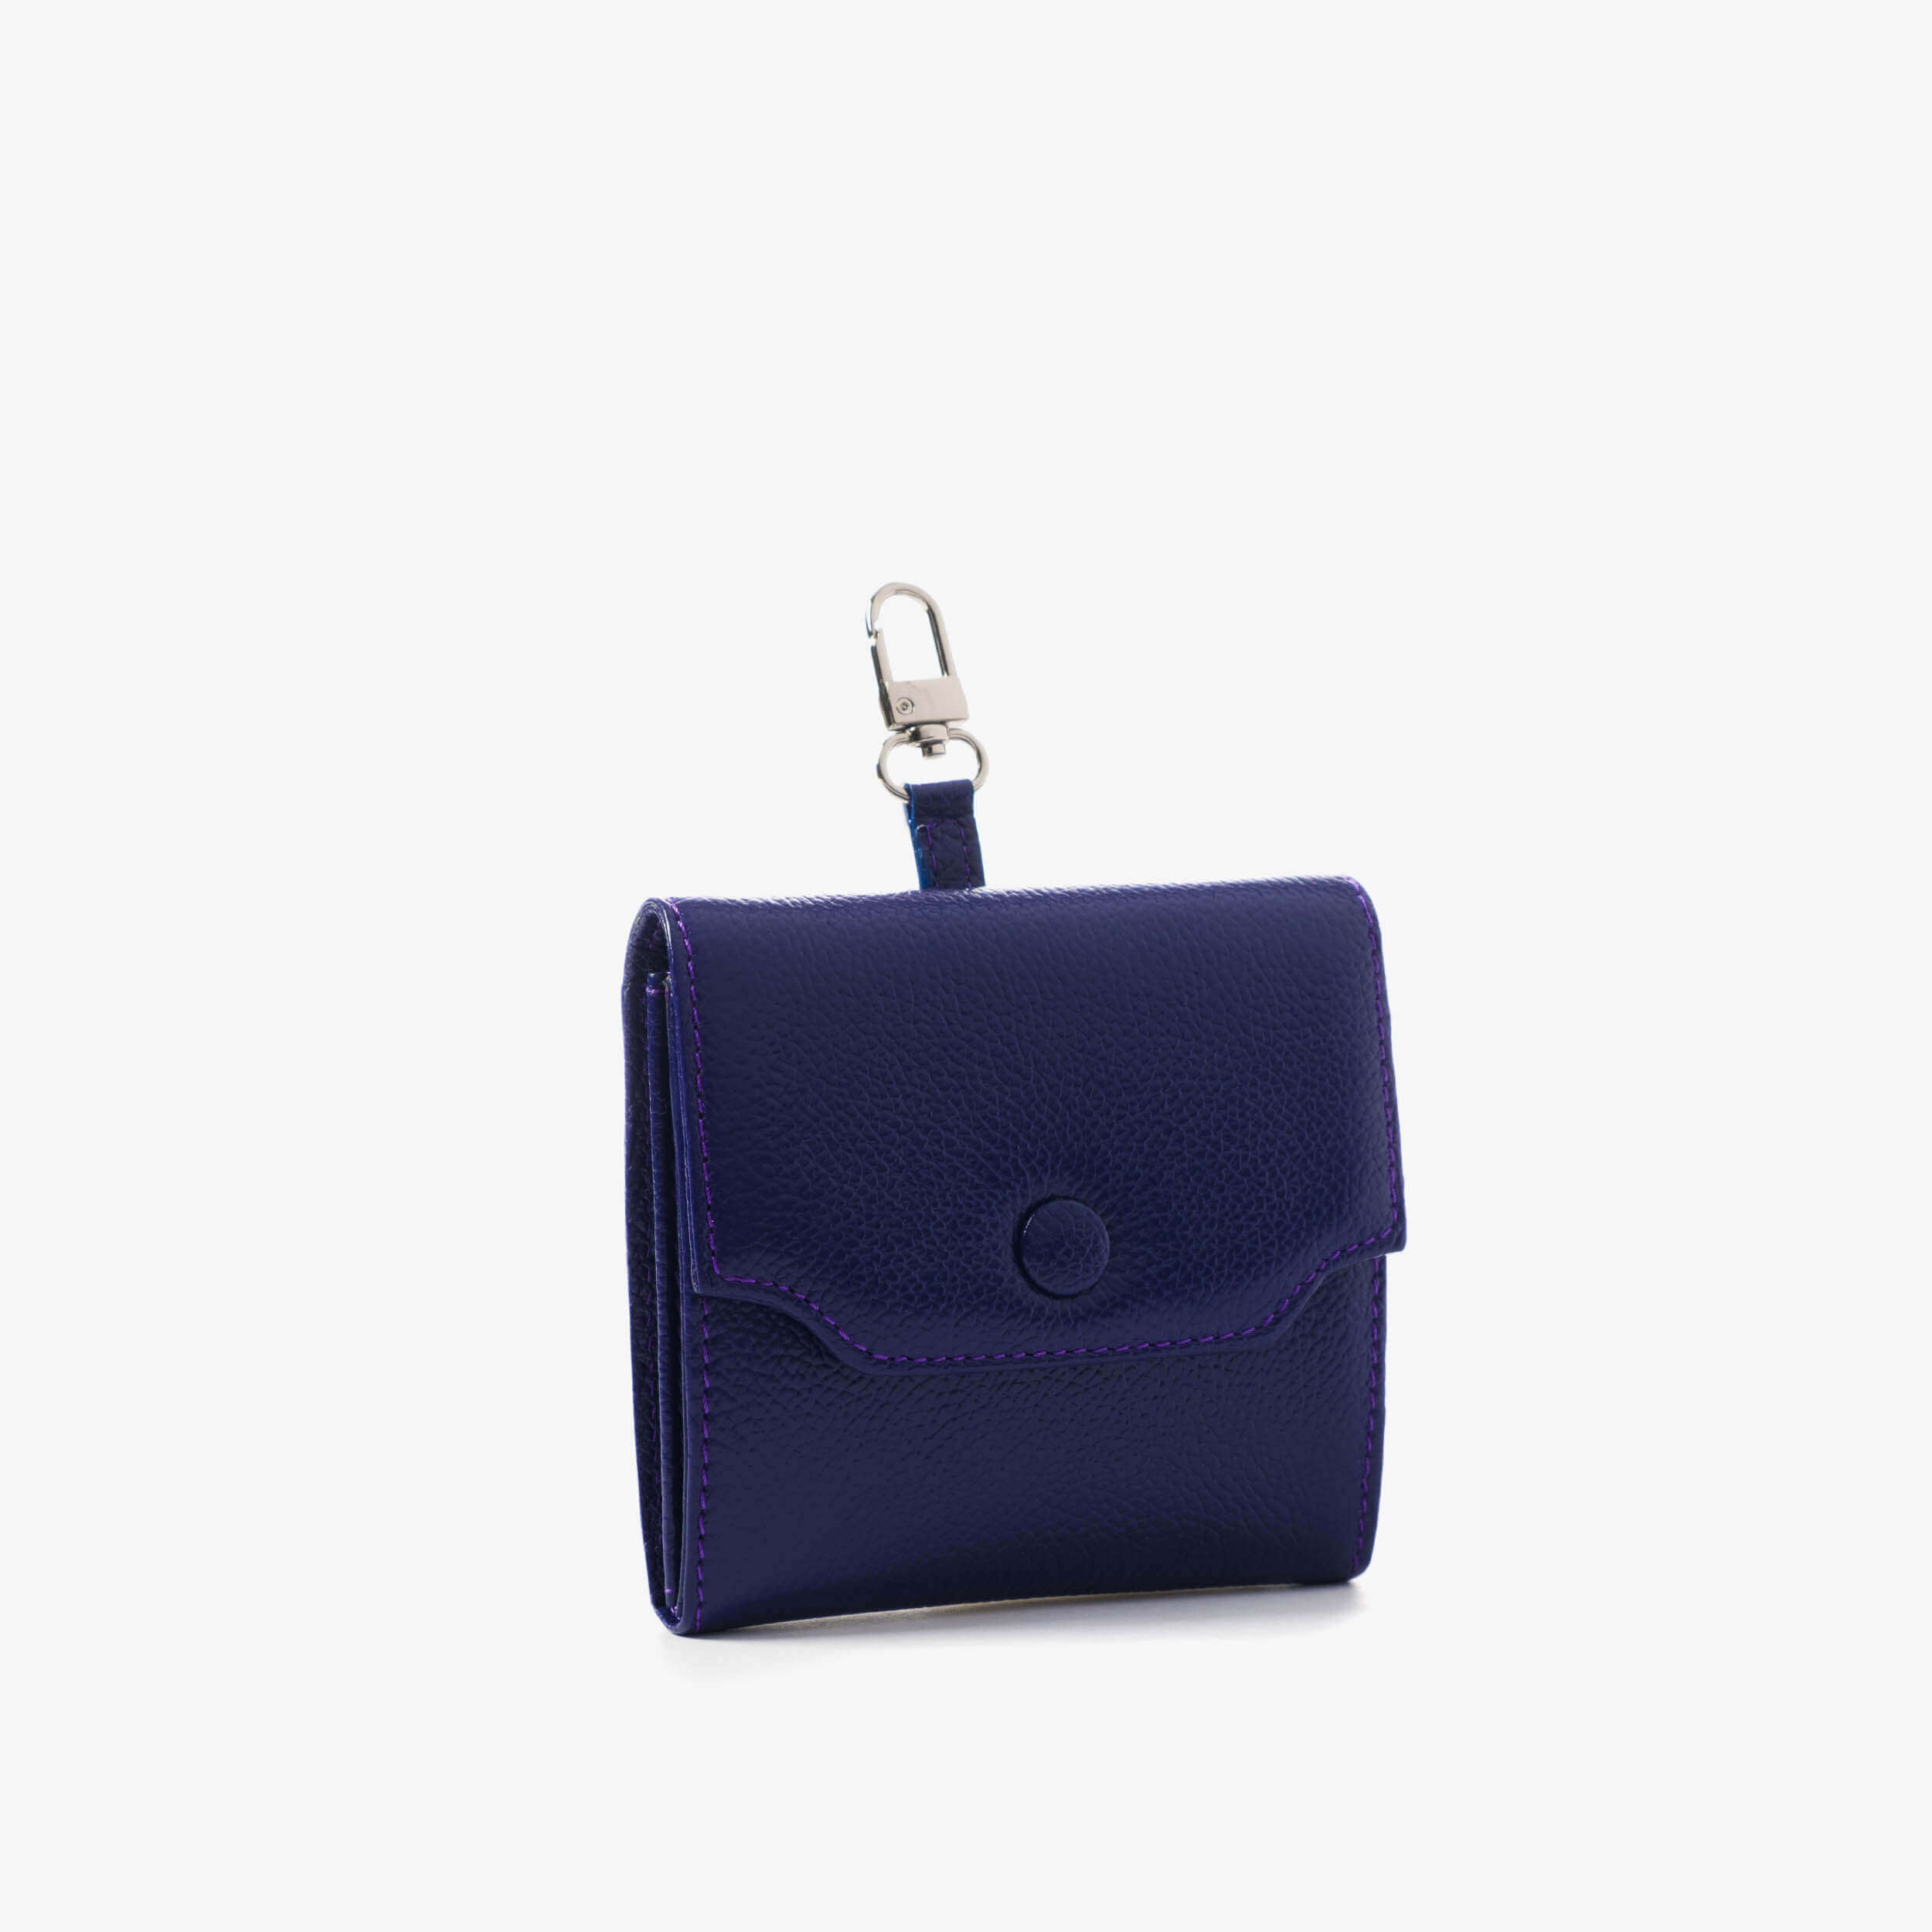 O Purse Berry Wye Matter Official Site